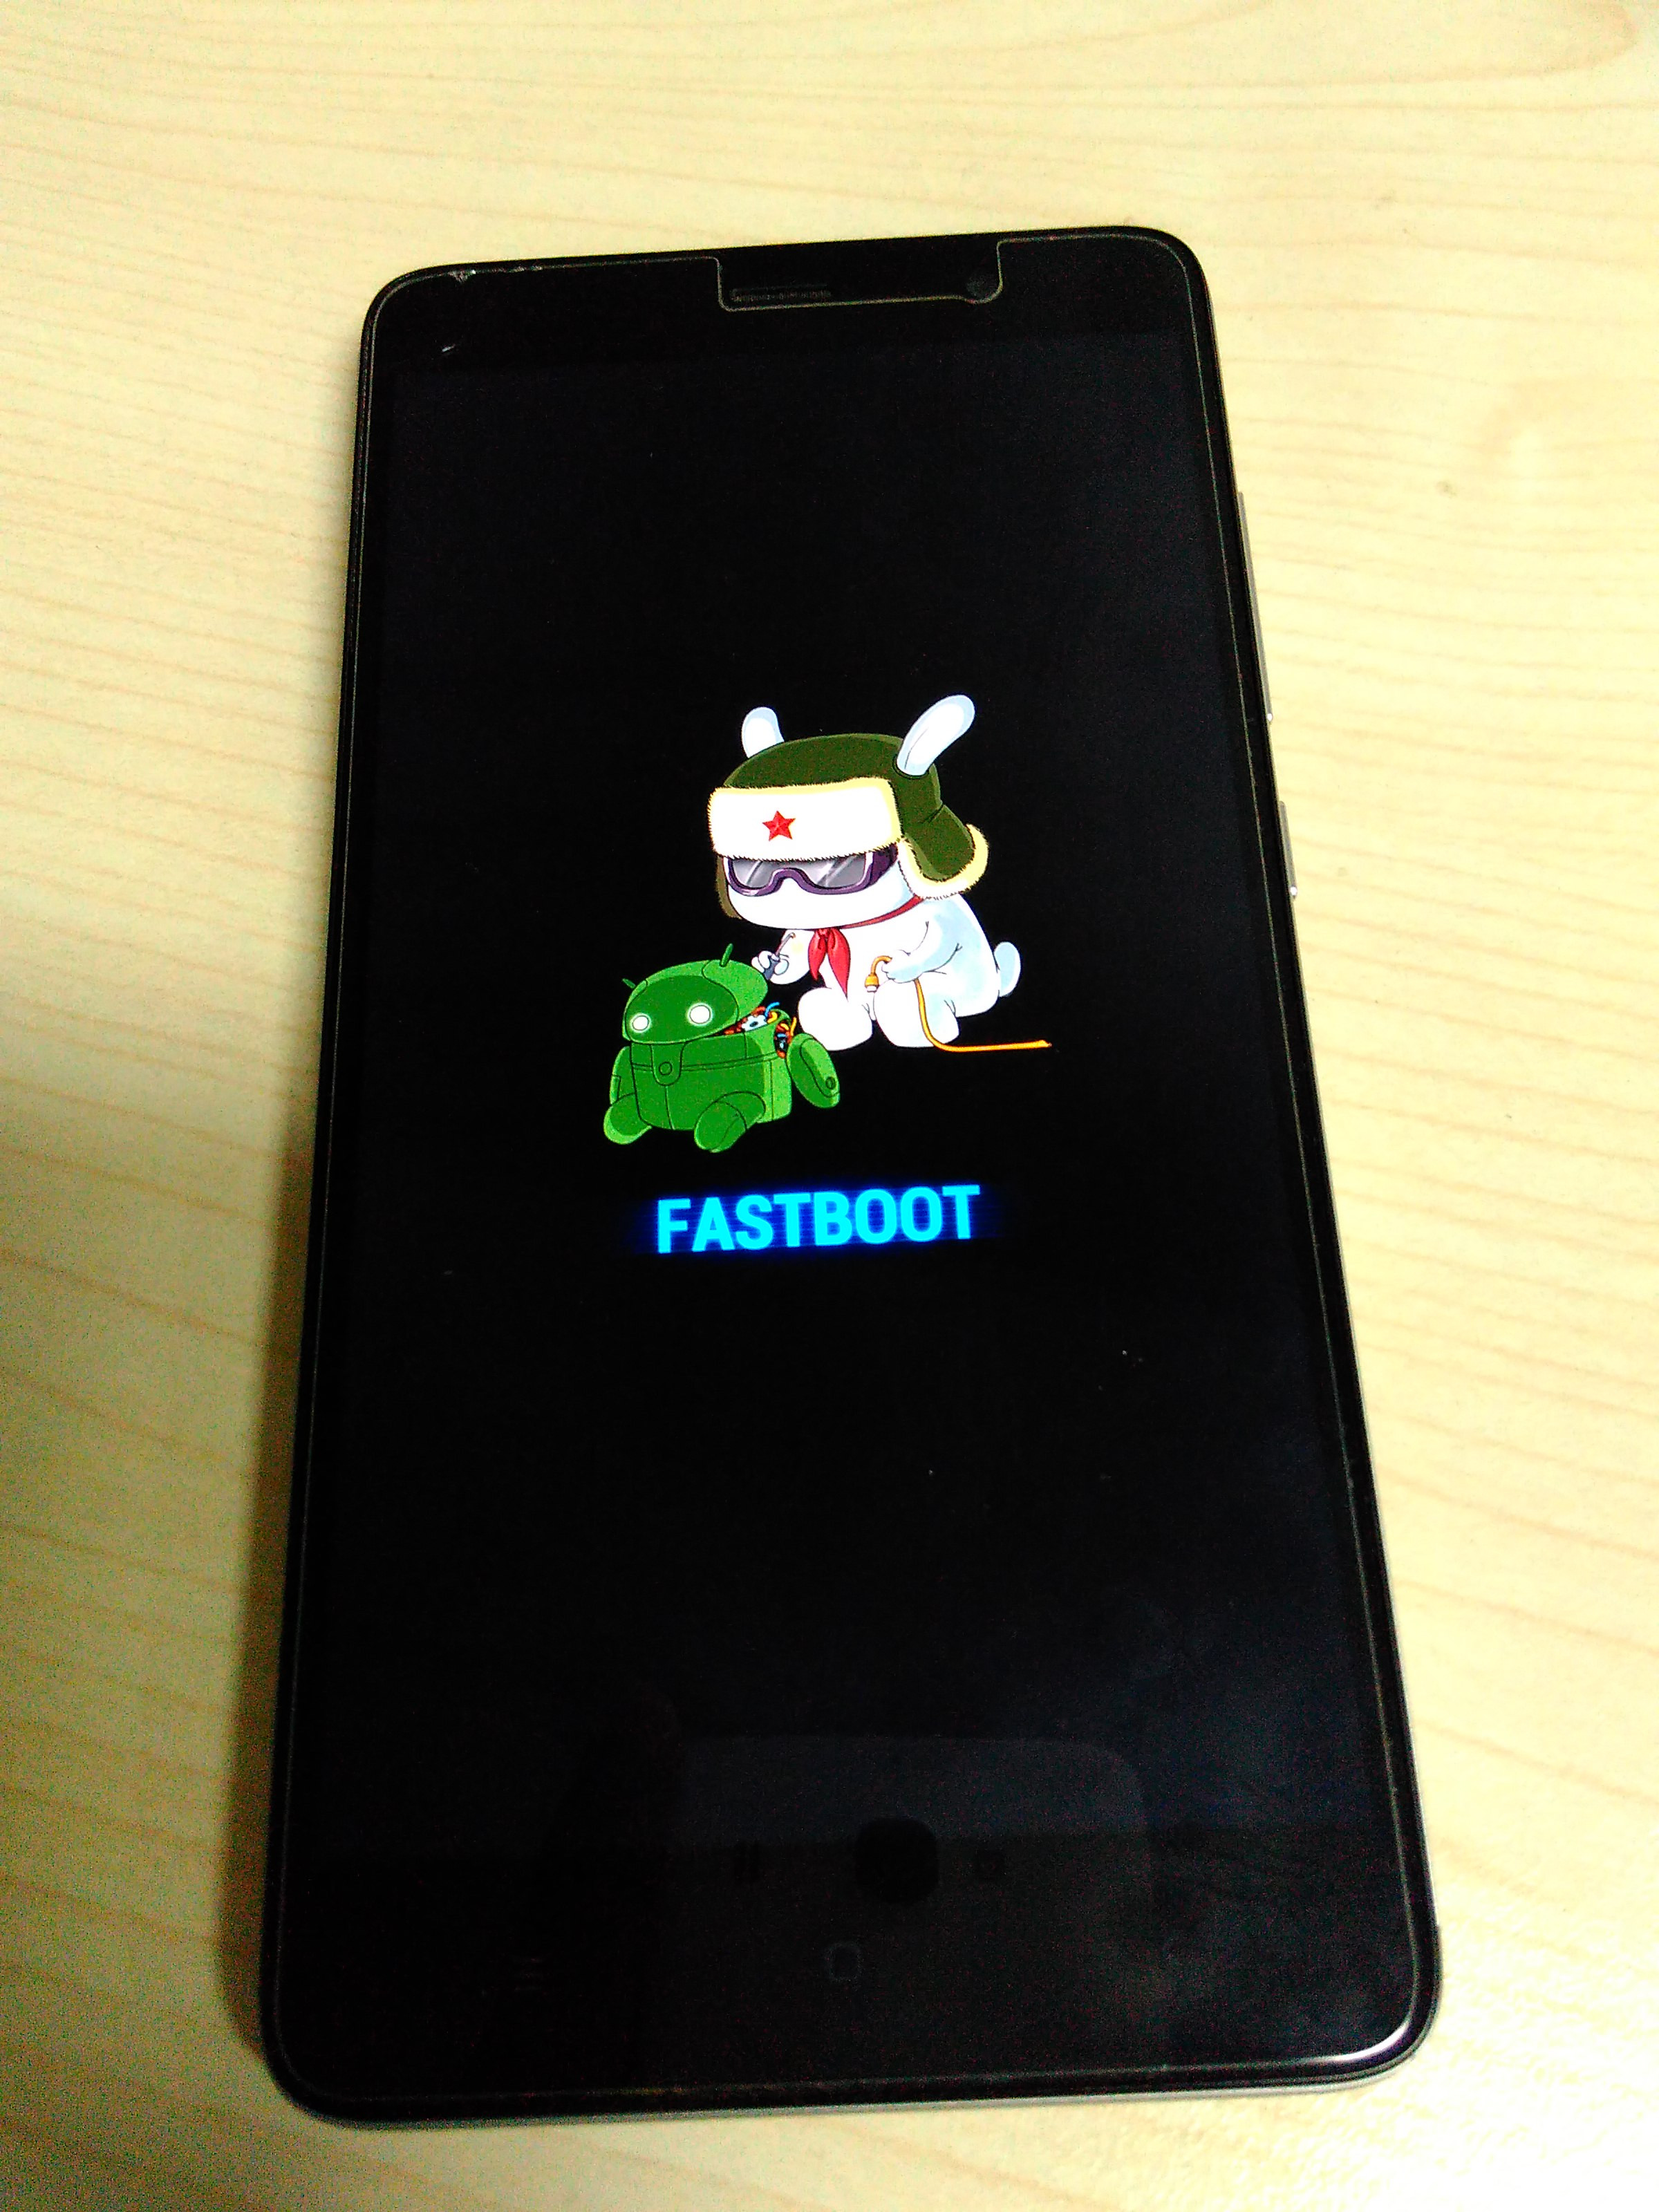 redmi note 3 fastboot